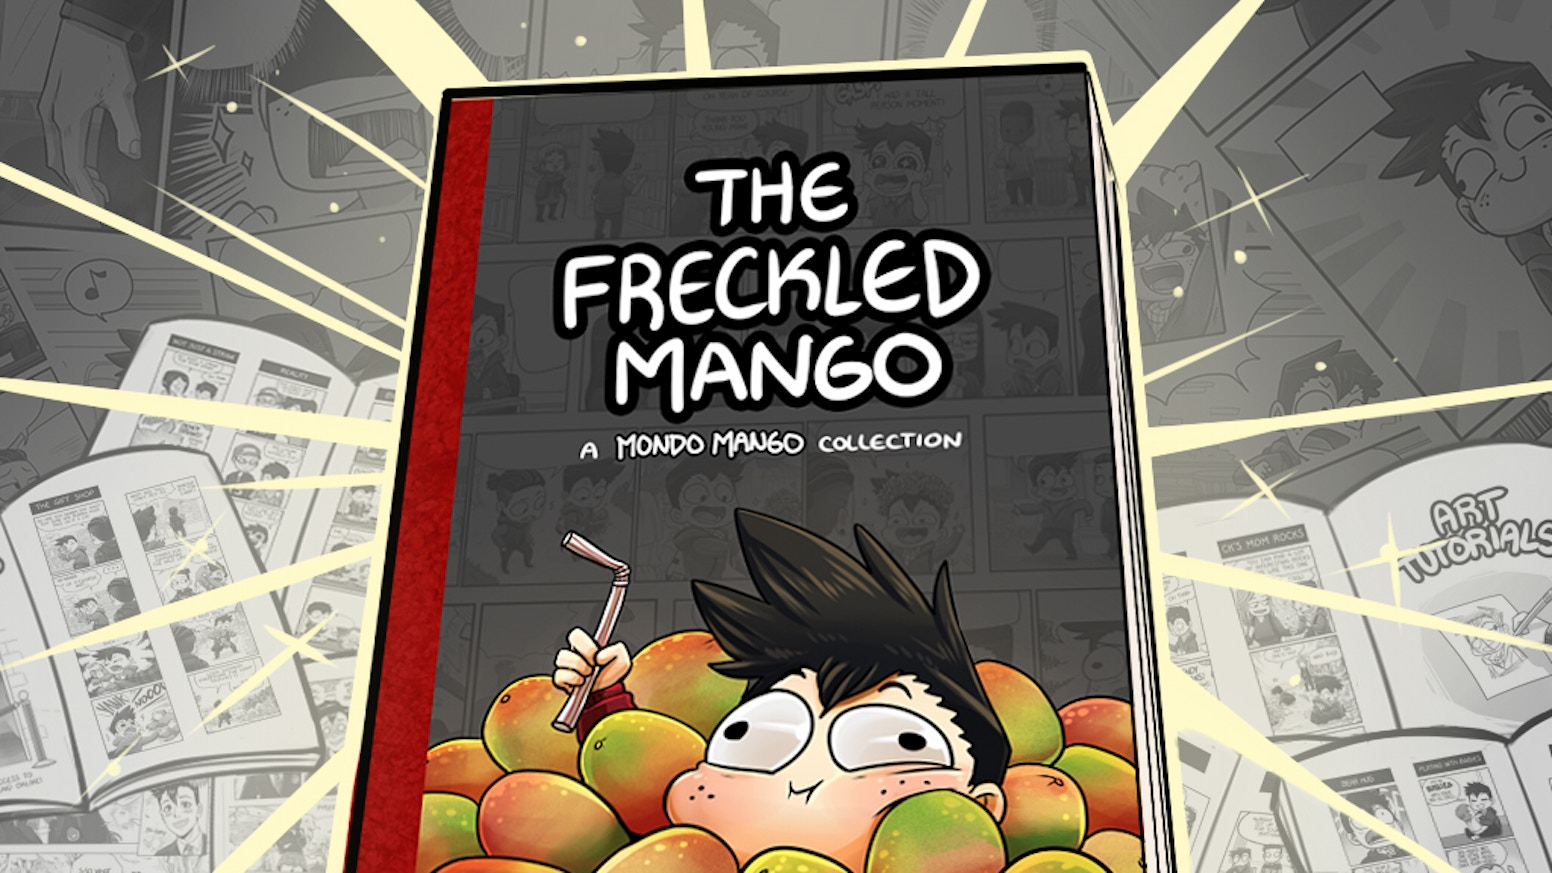 Packed with over 100 Mondo Mango strips plus exclusives, tutorials and more! Thank you to all those who supported & read my comics!